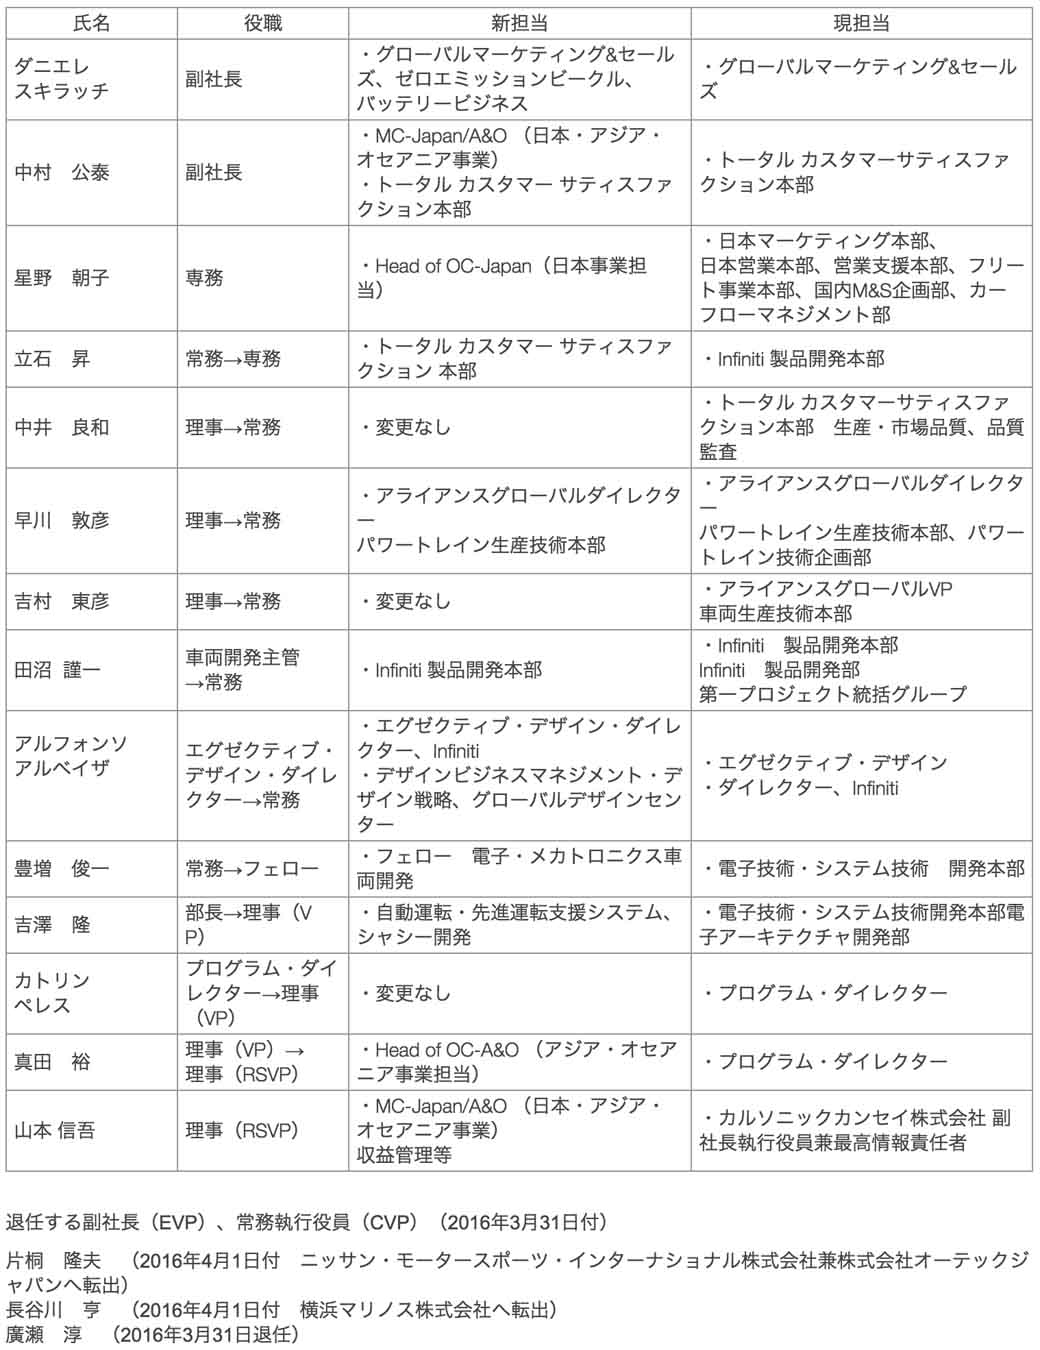 nissan-motor-co-ltd-changed-the-officer-system20160309-1